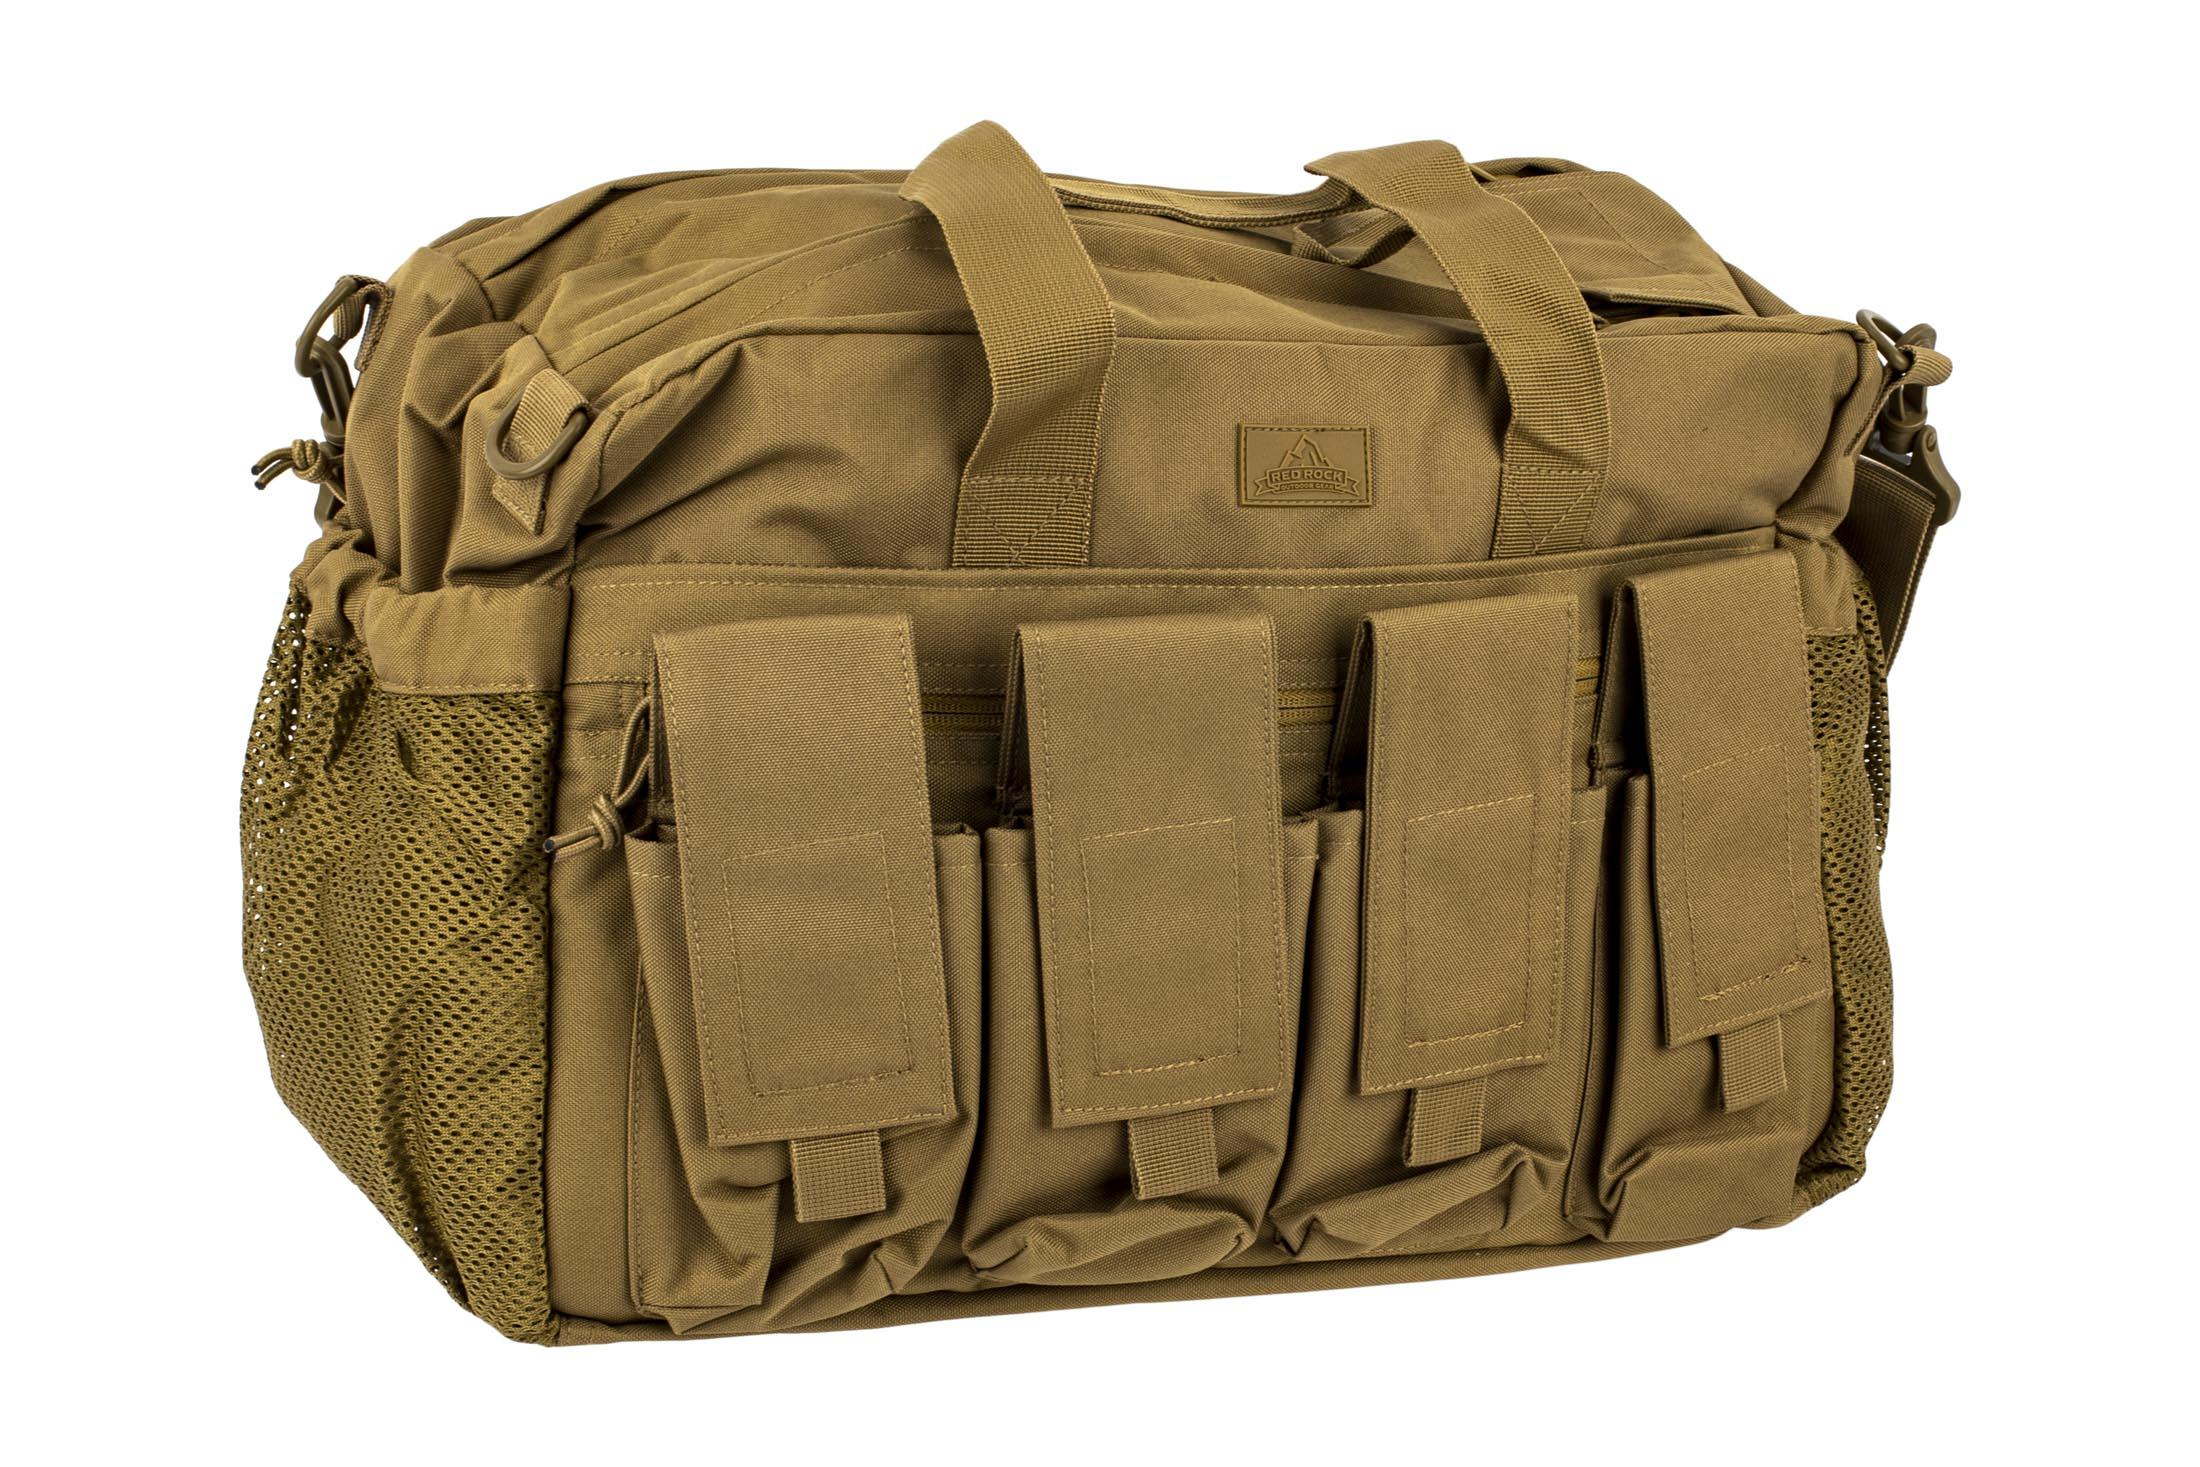 ff06e3f0de74 Red Rock Outdoor Gear Deluxe Range Bag - Coyote